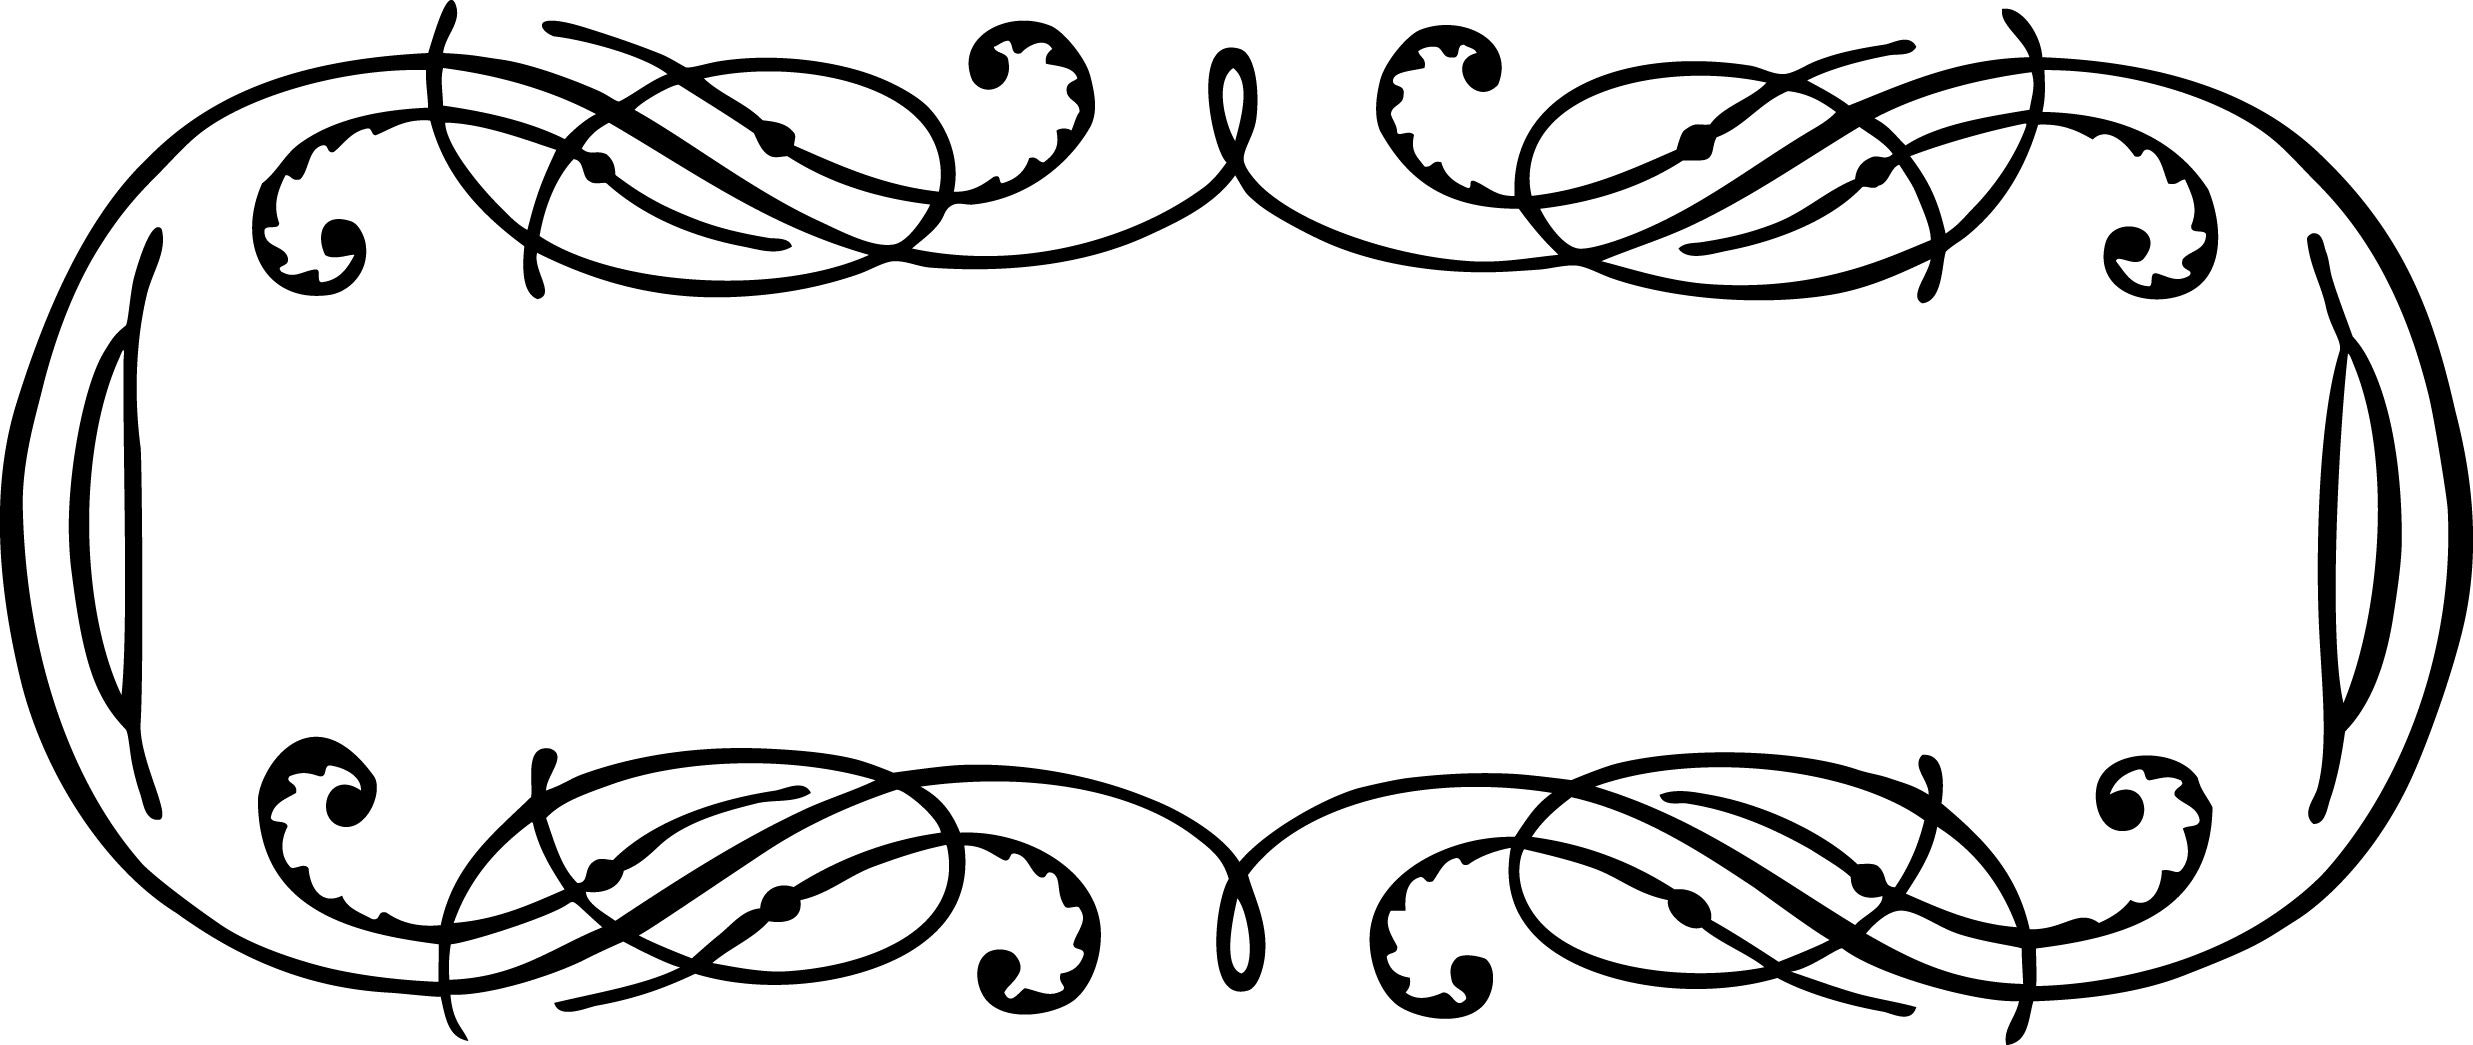 Calligraphy clipart #14, Download drawings